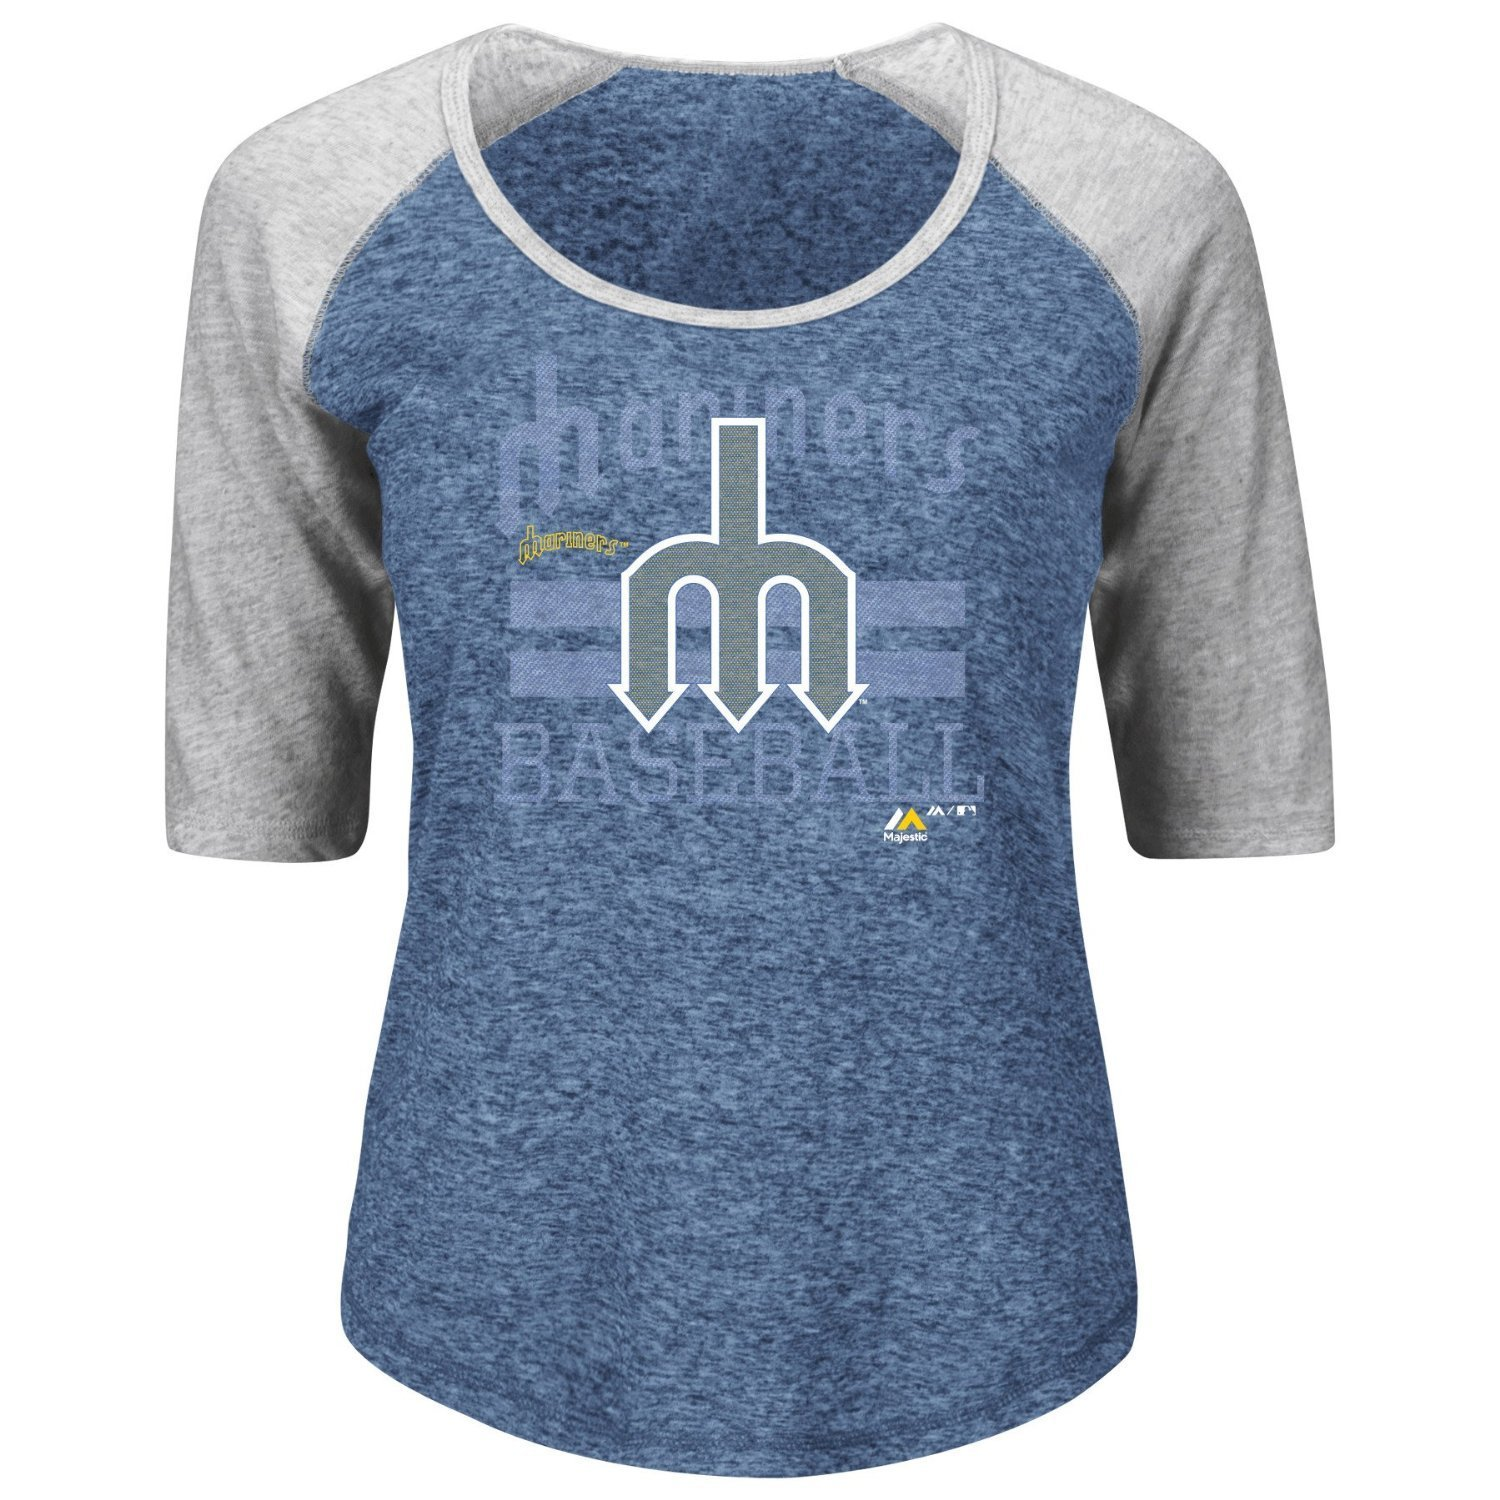 Majestic Women's MLB Cooperstown All In For The Win Raglan Tee (Large, Seattle Mariners)